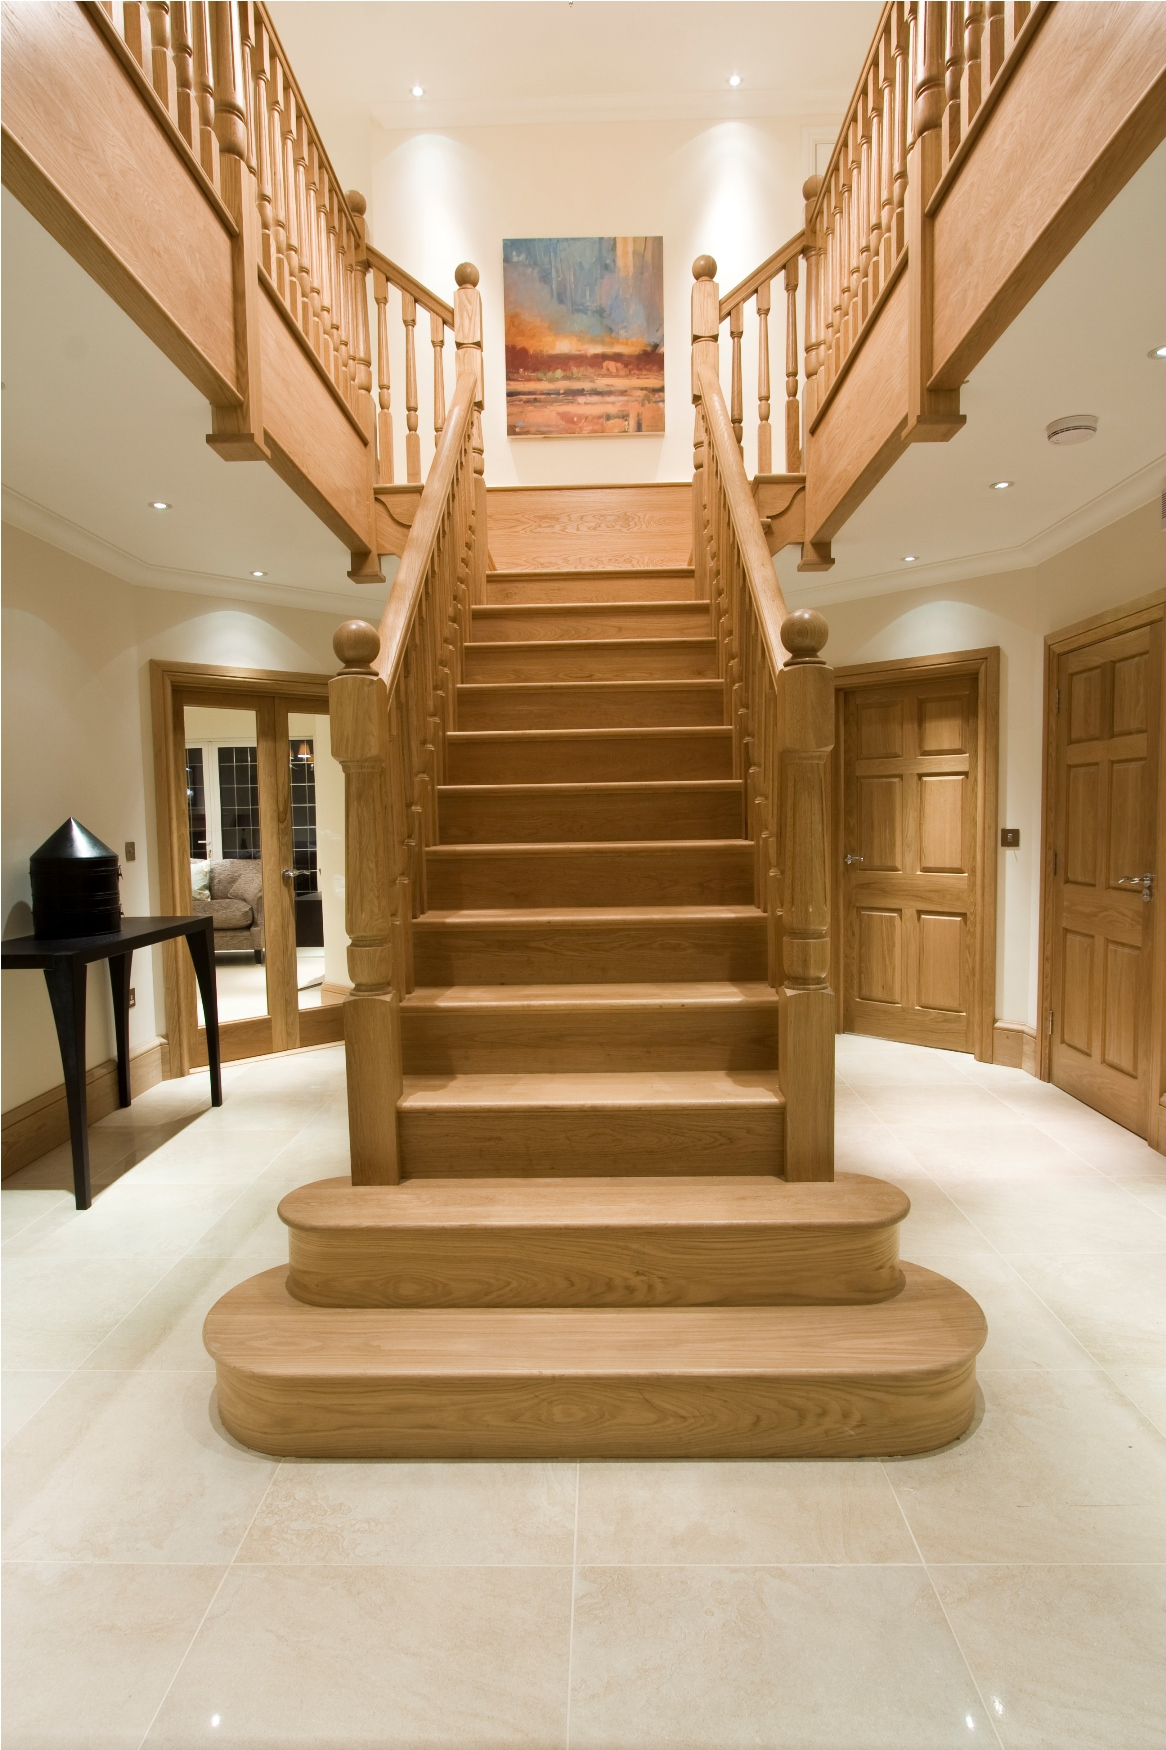 Modern Center Staircase Design 2846 House Decoration Ideas